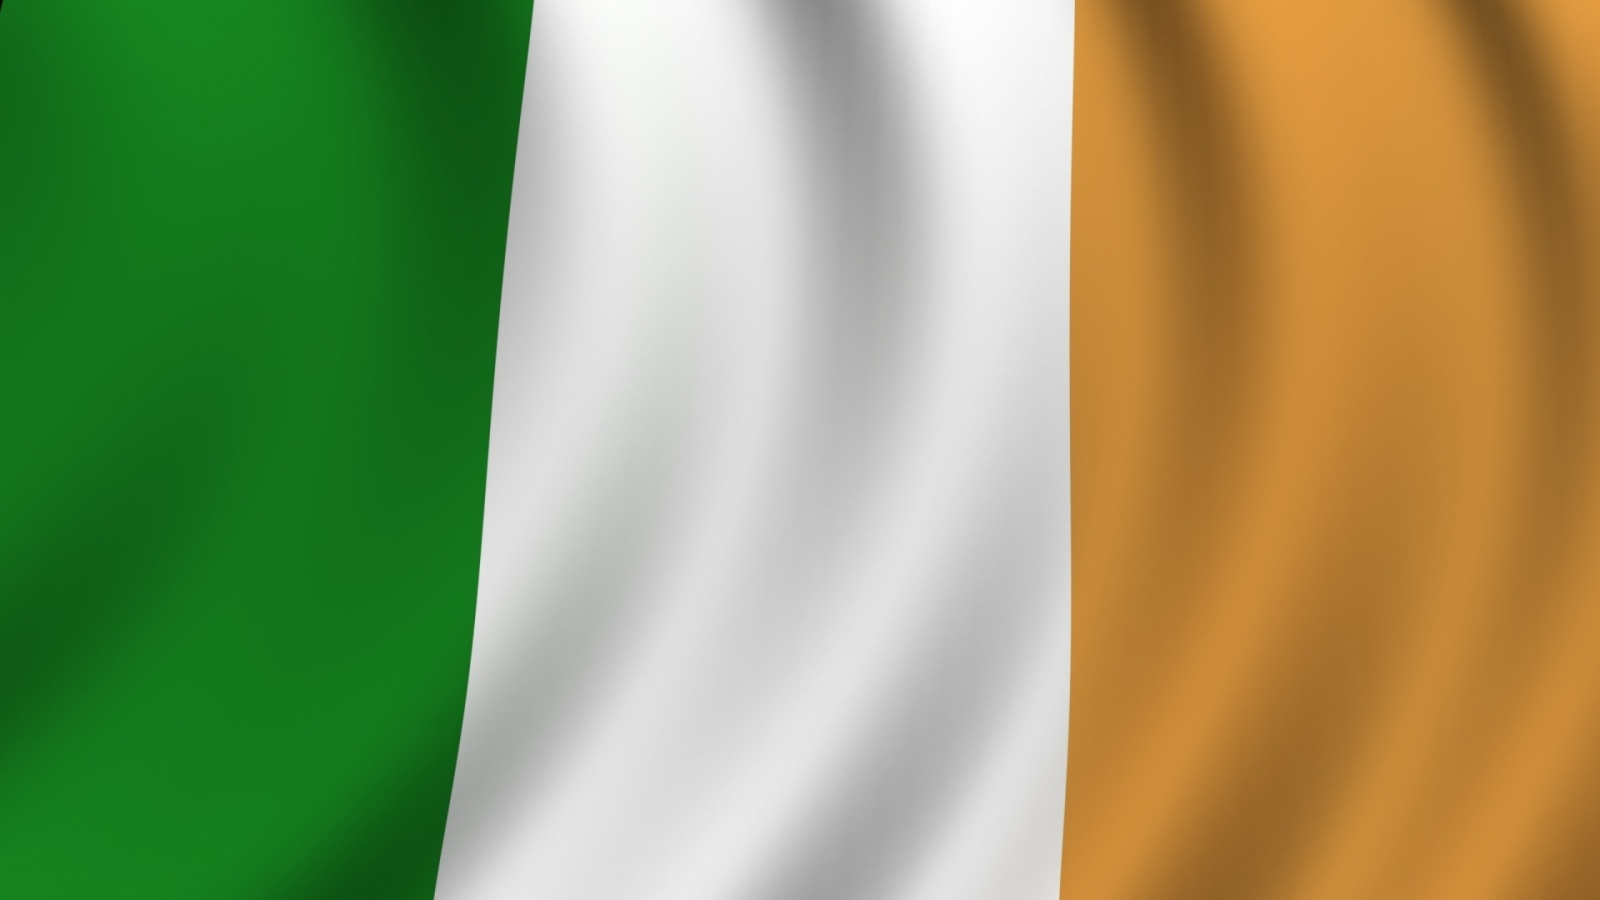 Irish Flag Wallpaper For IPhone  WallpaperSafari